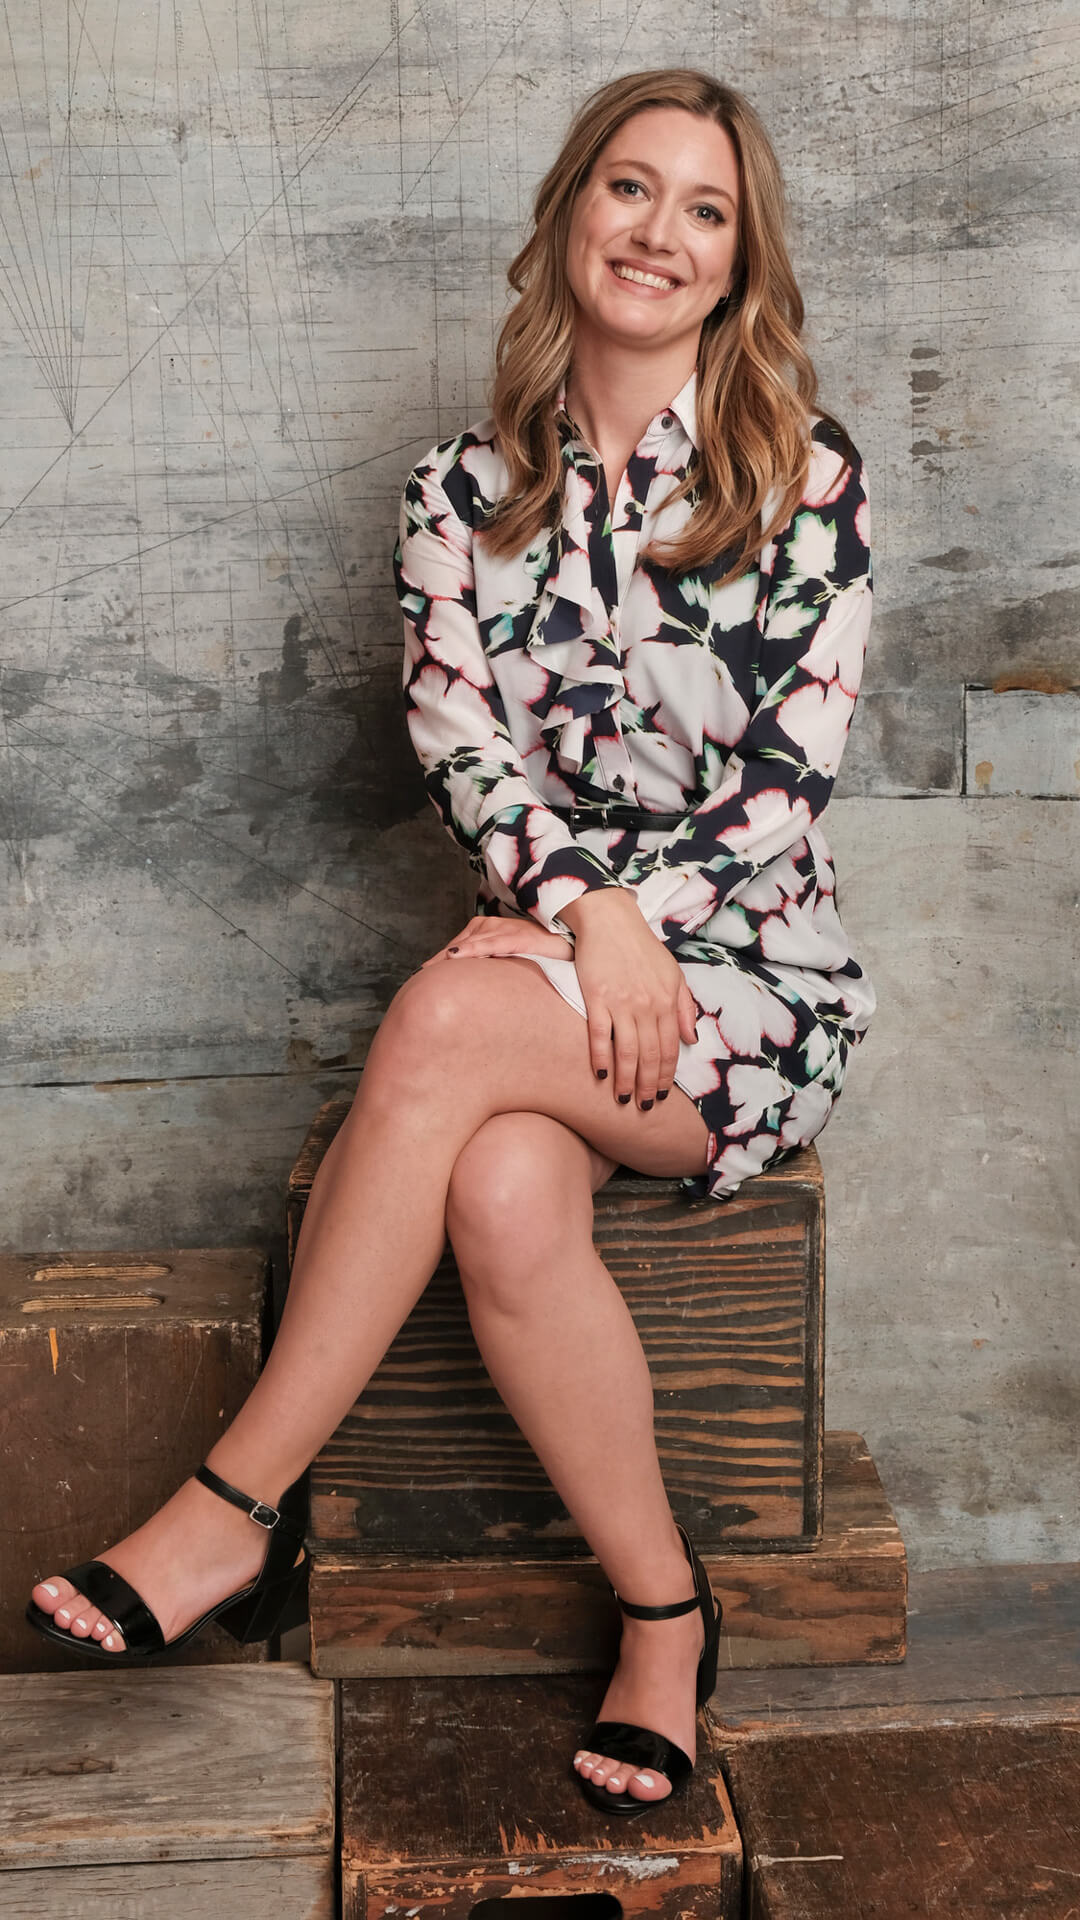 The Hottest Zoe Perry Photos Around The Net - 12thBlog